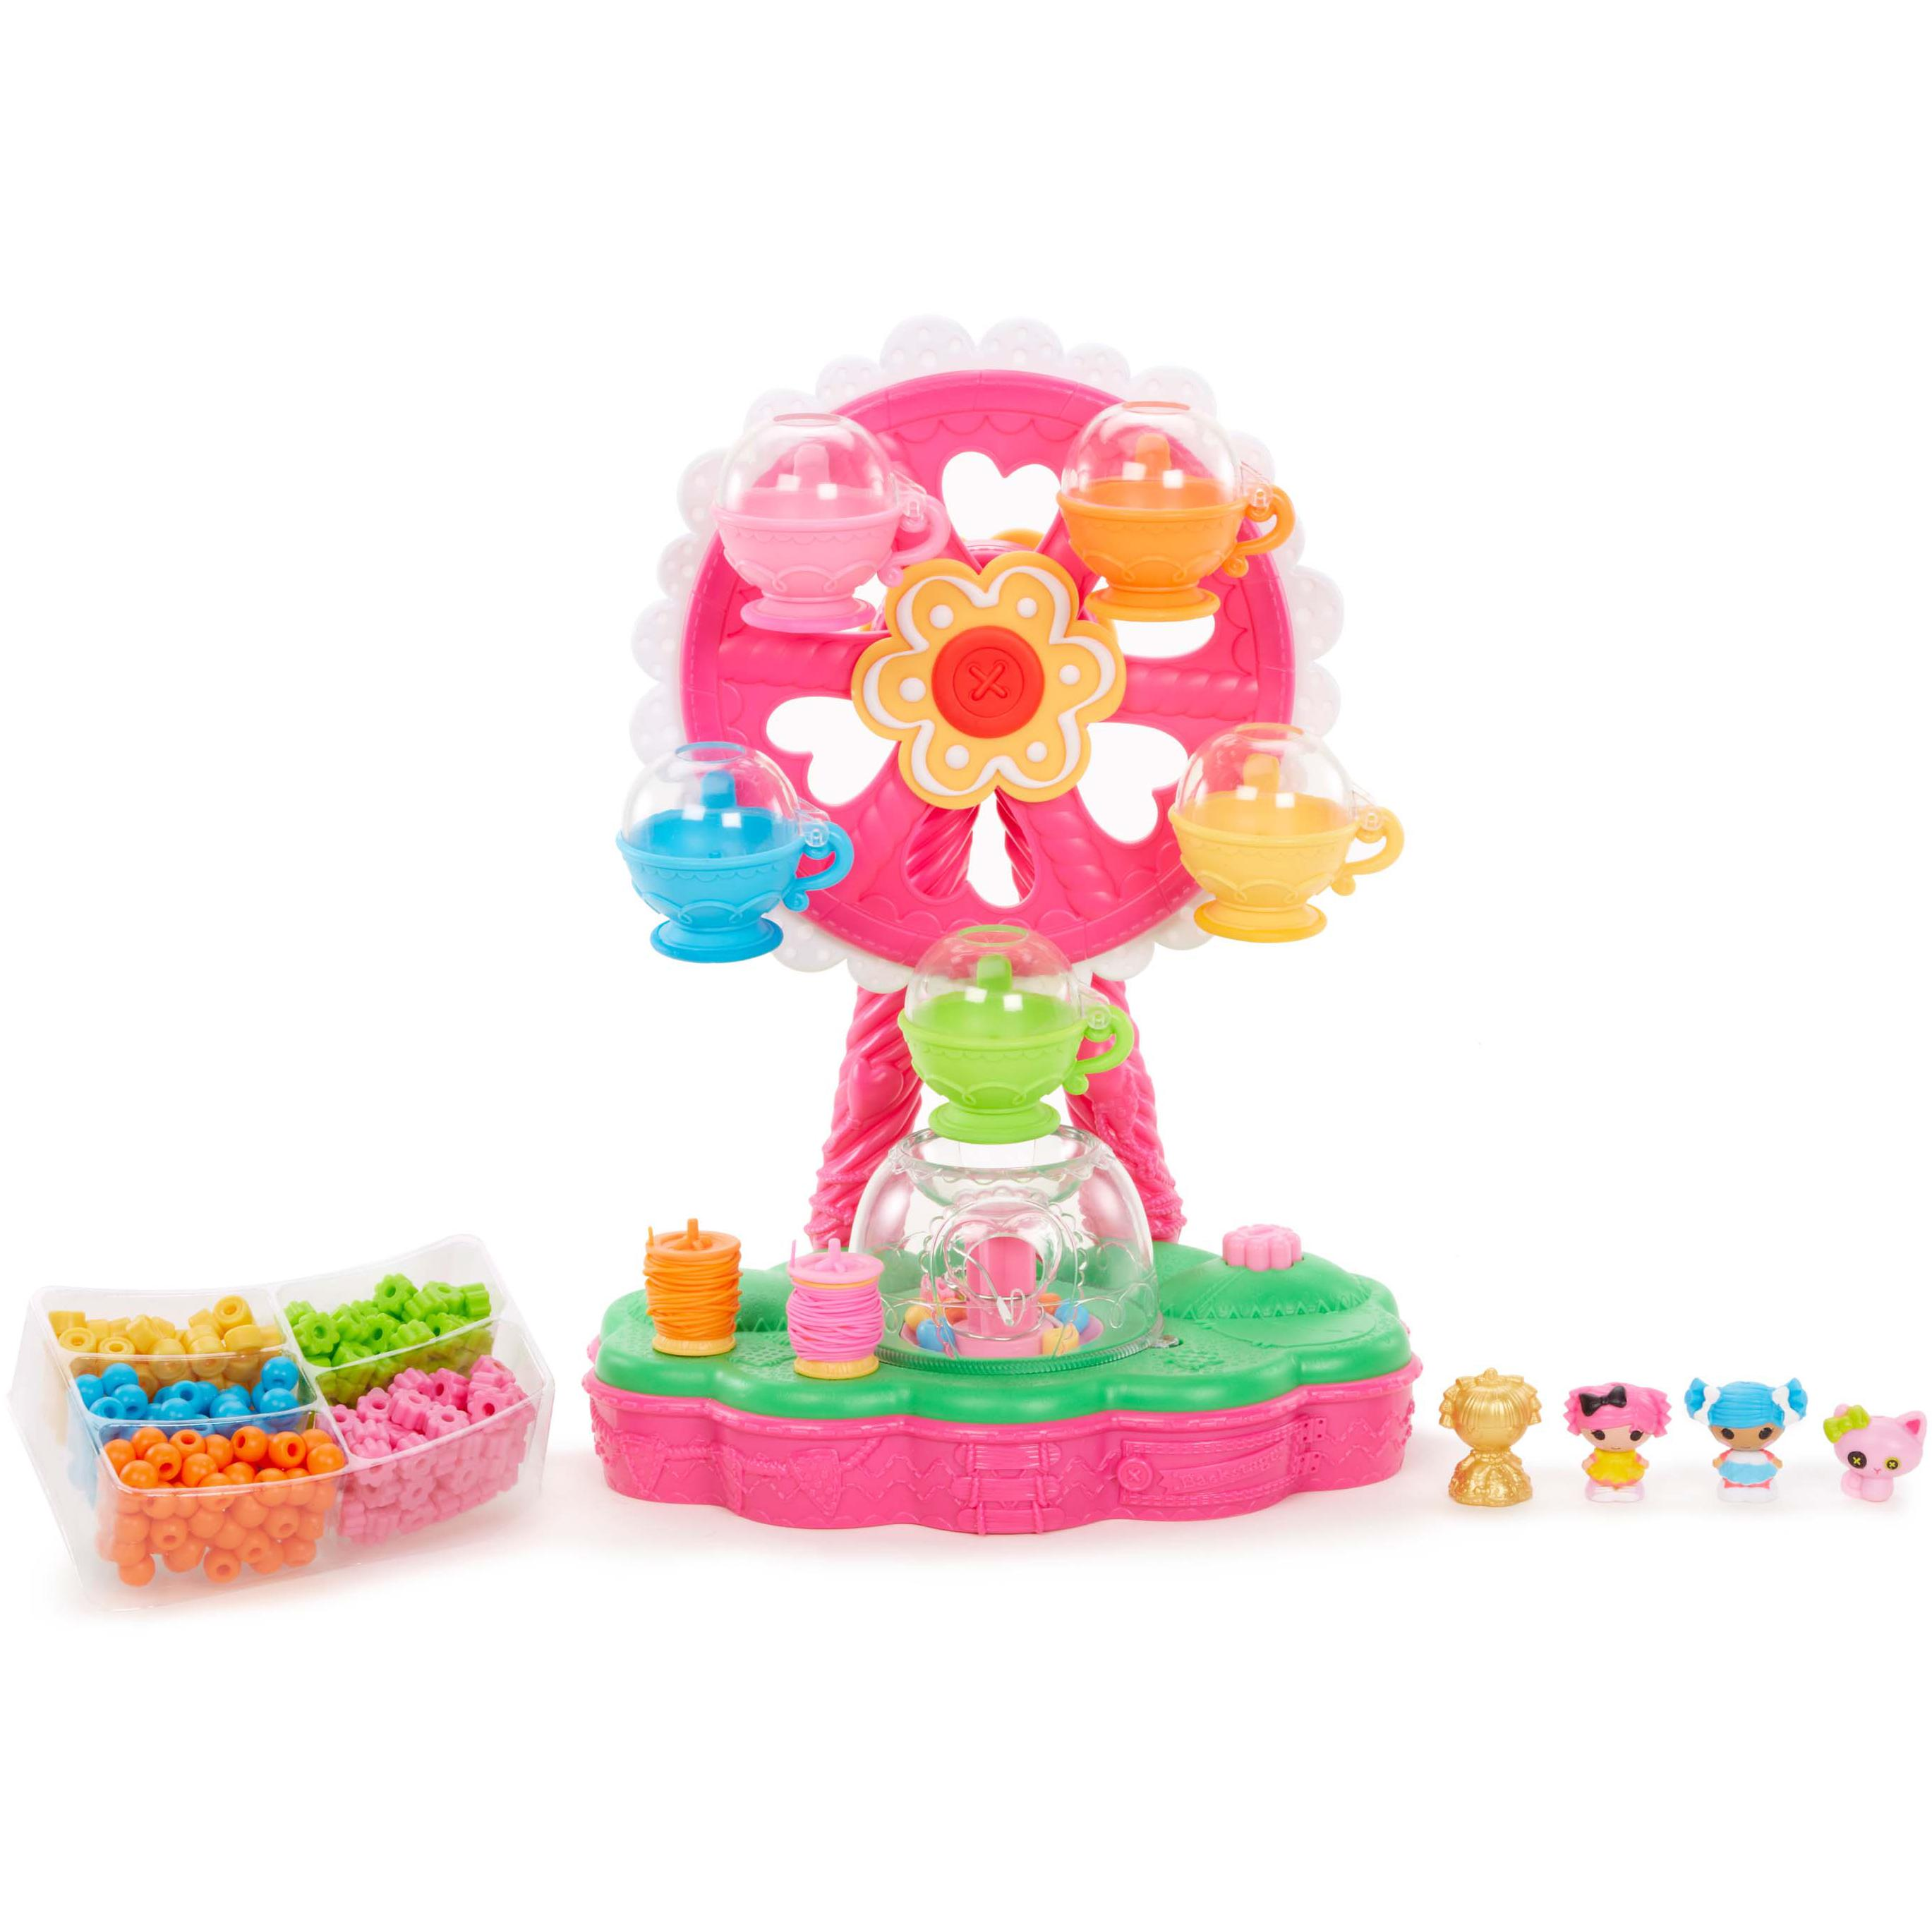 lalaloopsy tinies jewelry maker playset toys